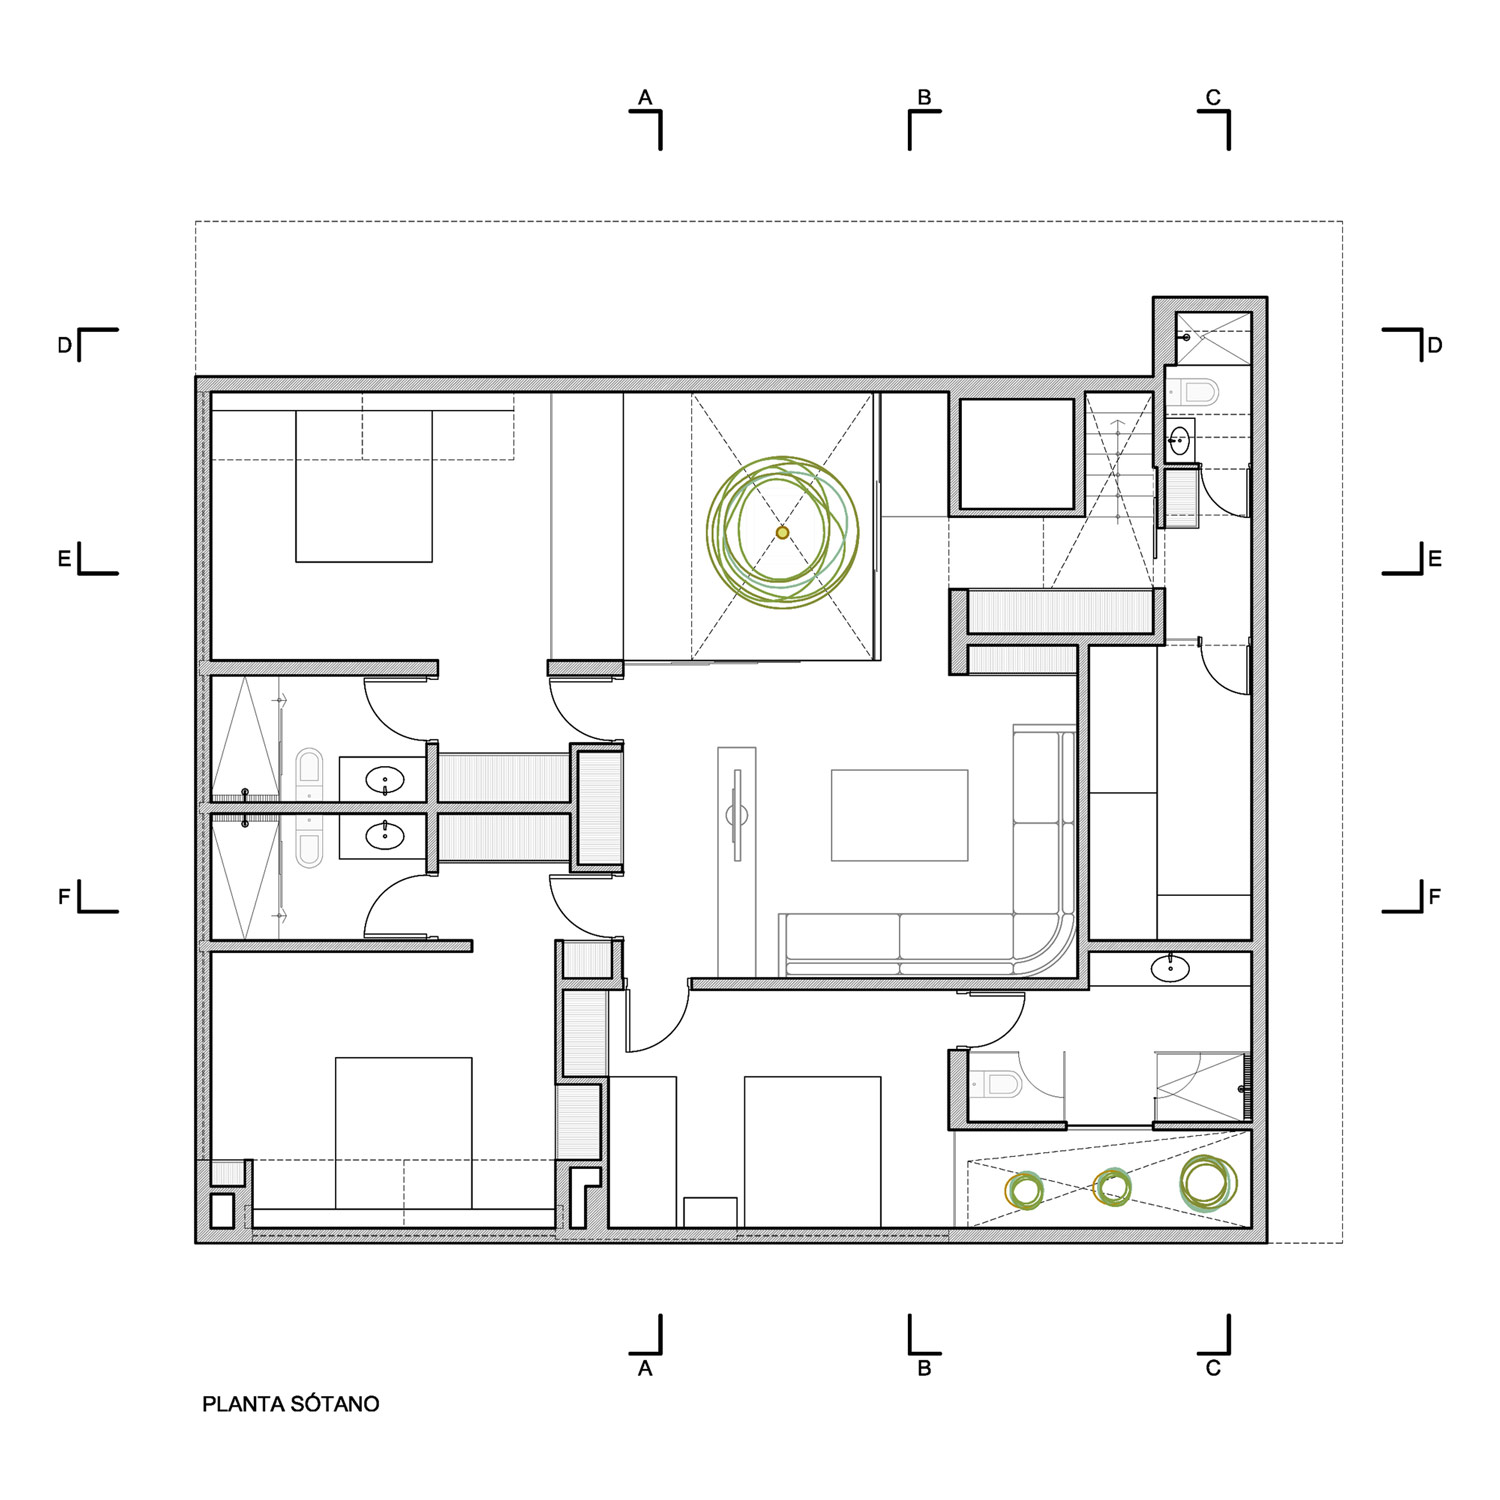 Basement floor plan luxury modern home in lima peru for Modern home plans with basement